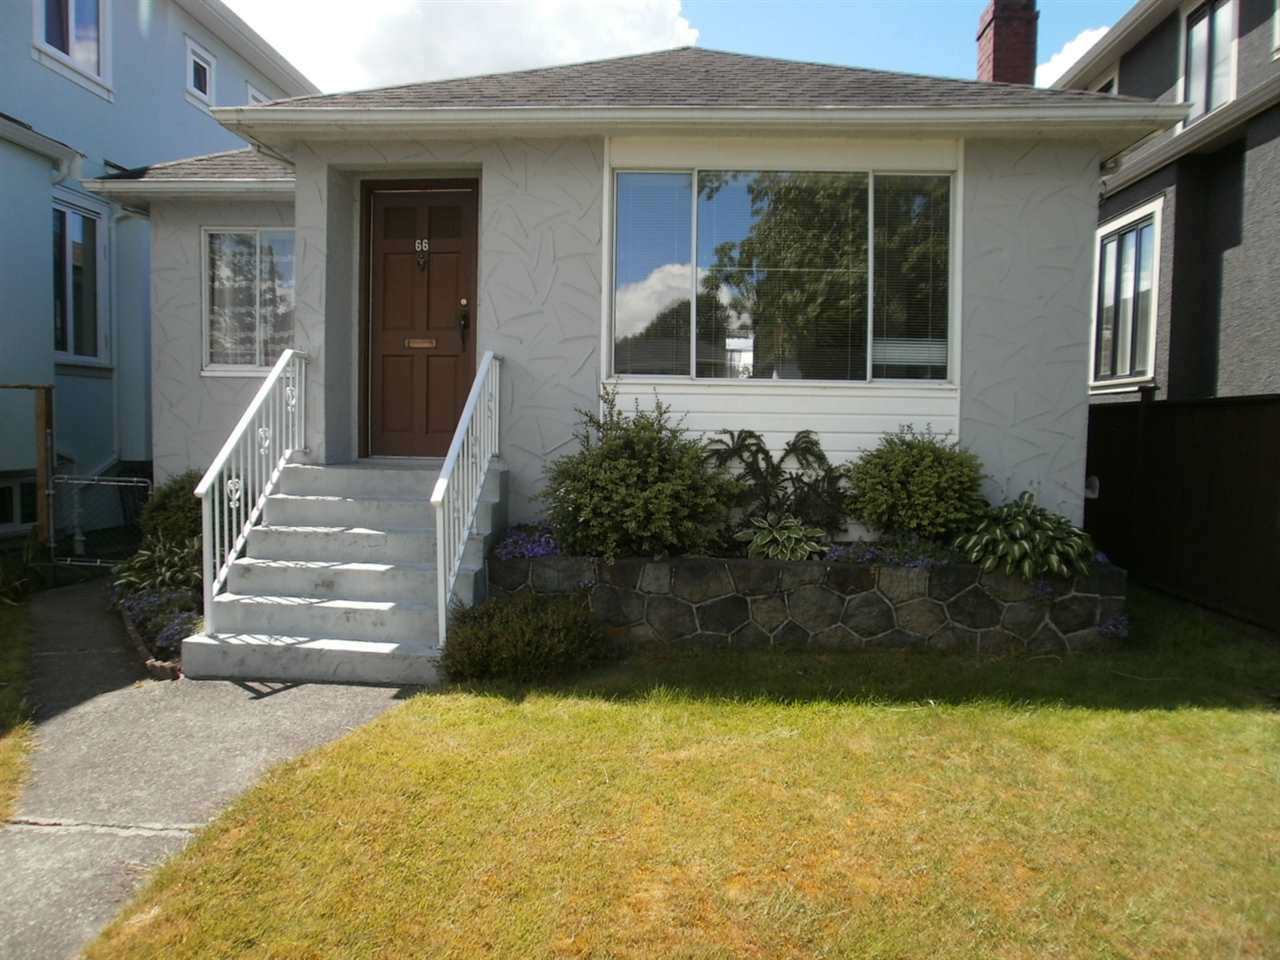 Sold: 66 East 48th Avenue, Vancouver, BC